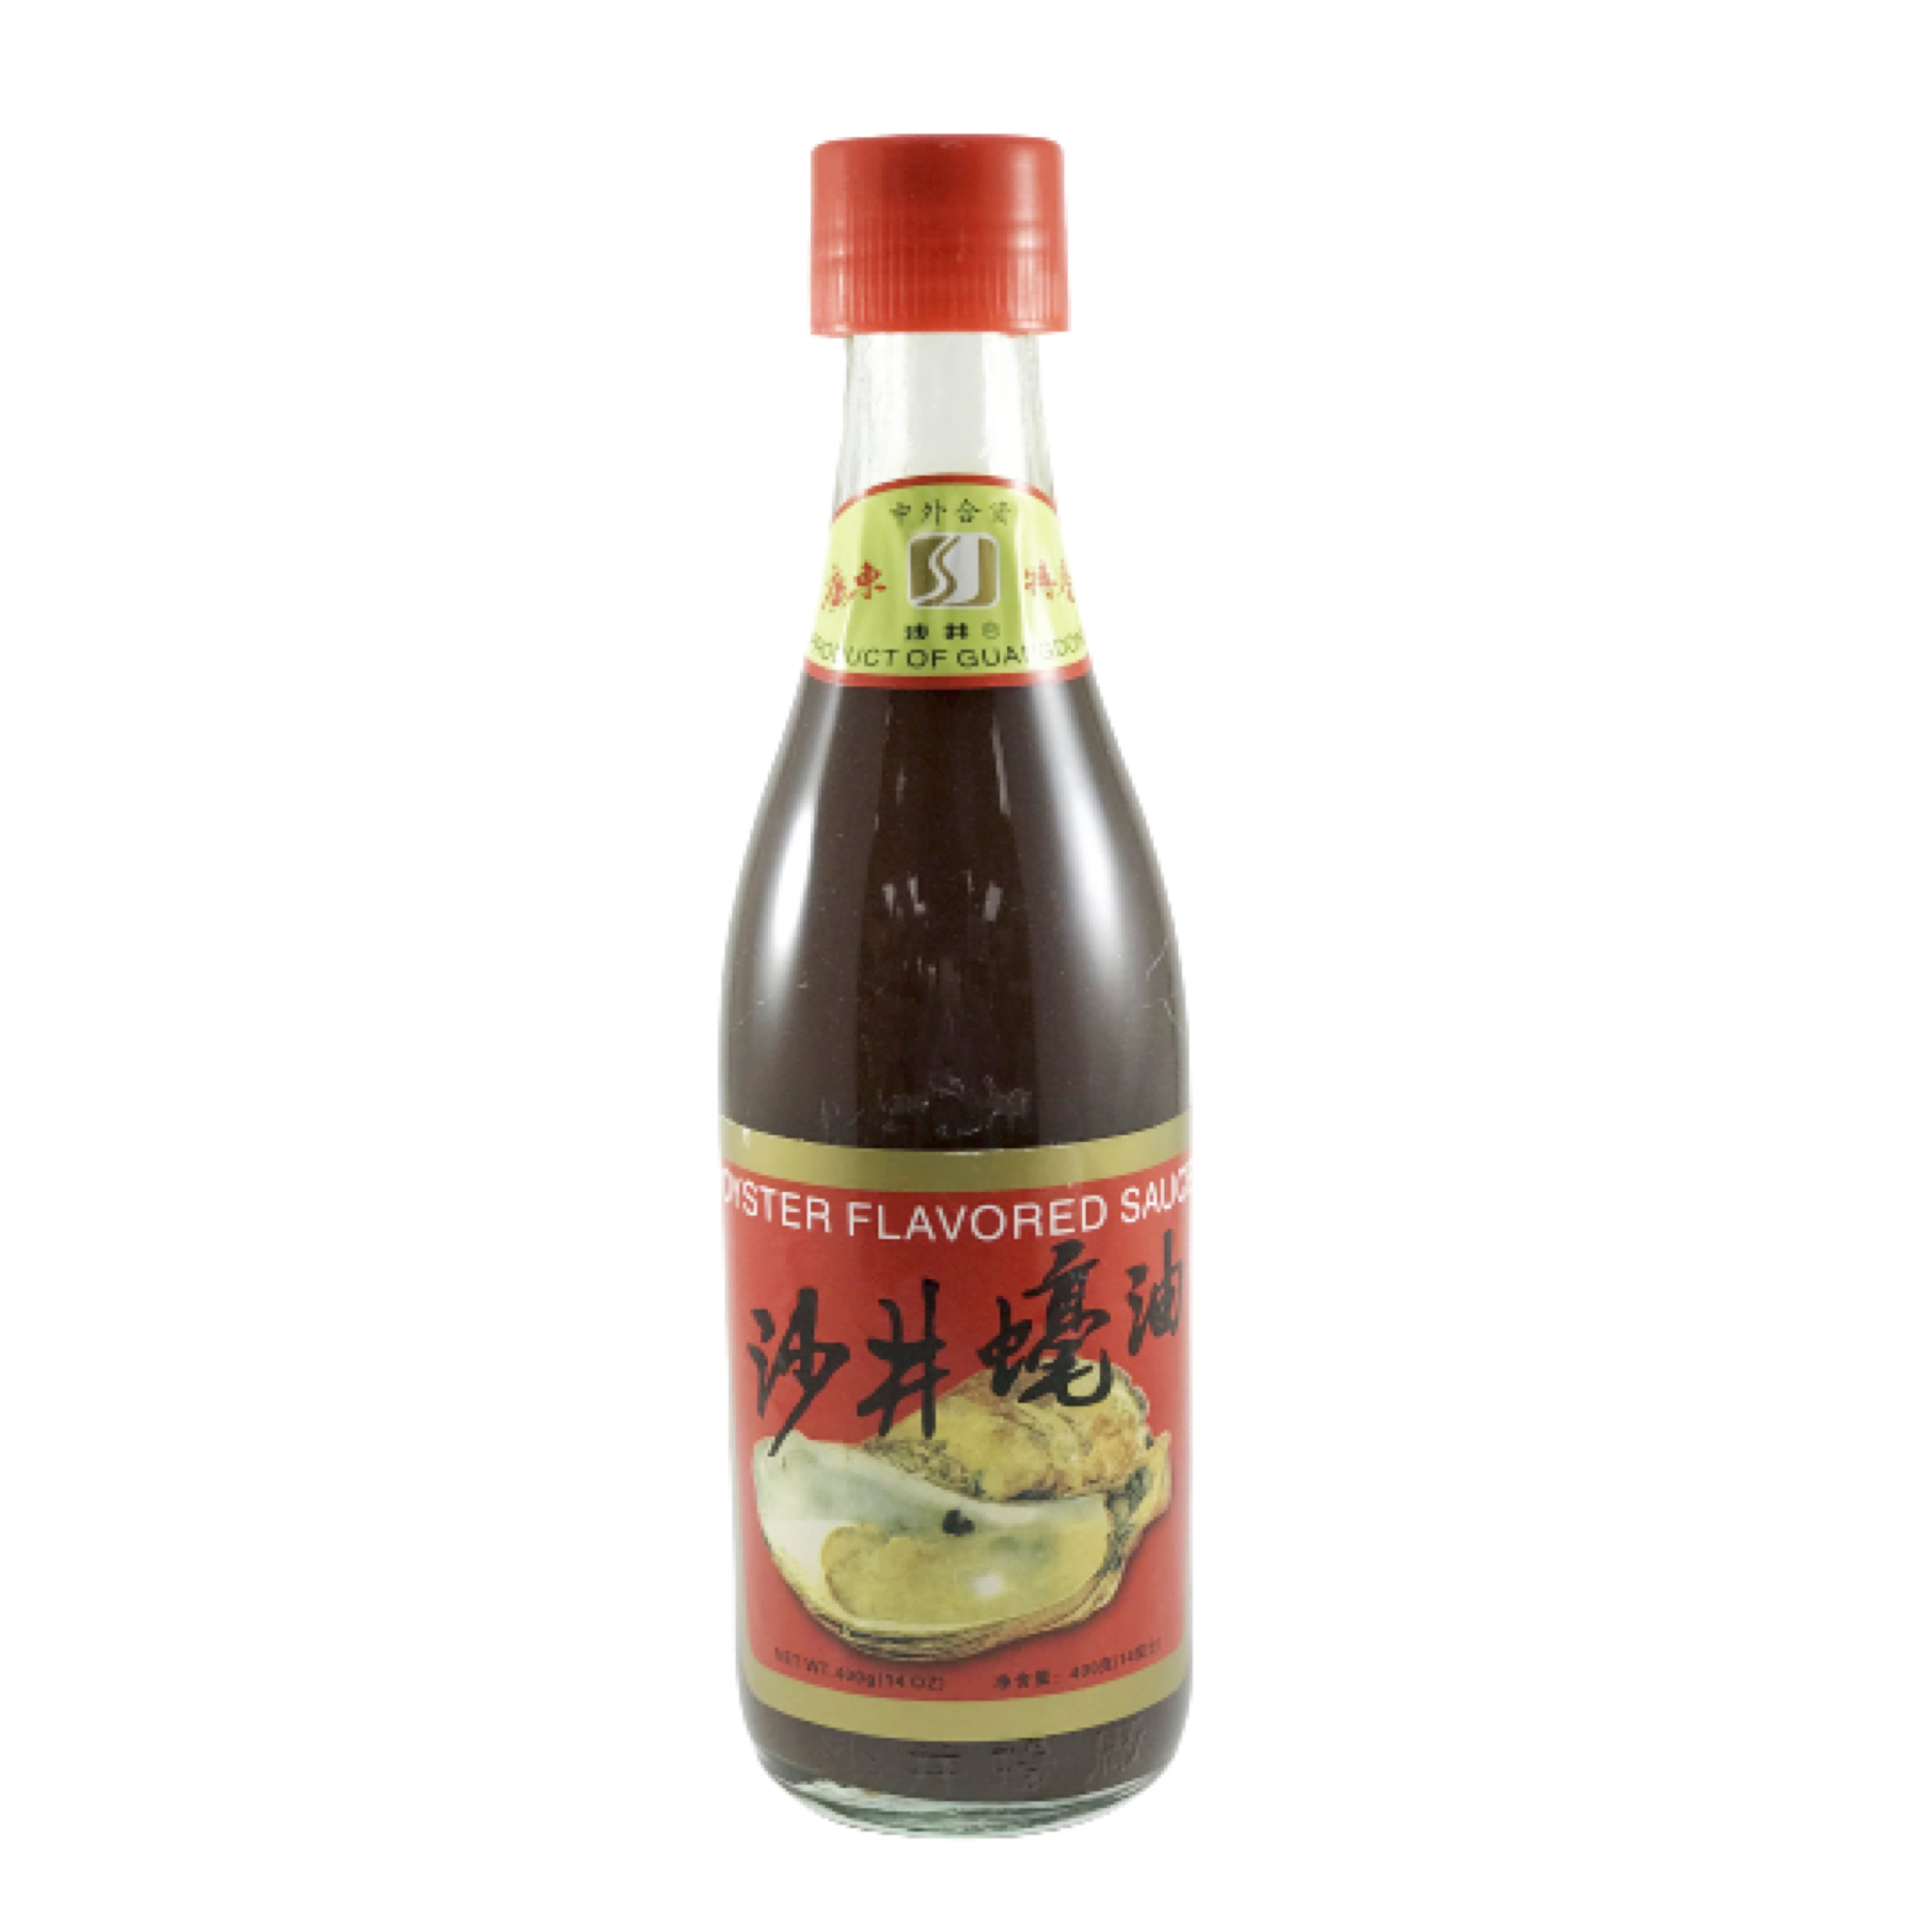 Oyster Flavored Sauce 沙井蠔油 14oz